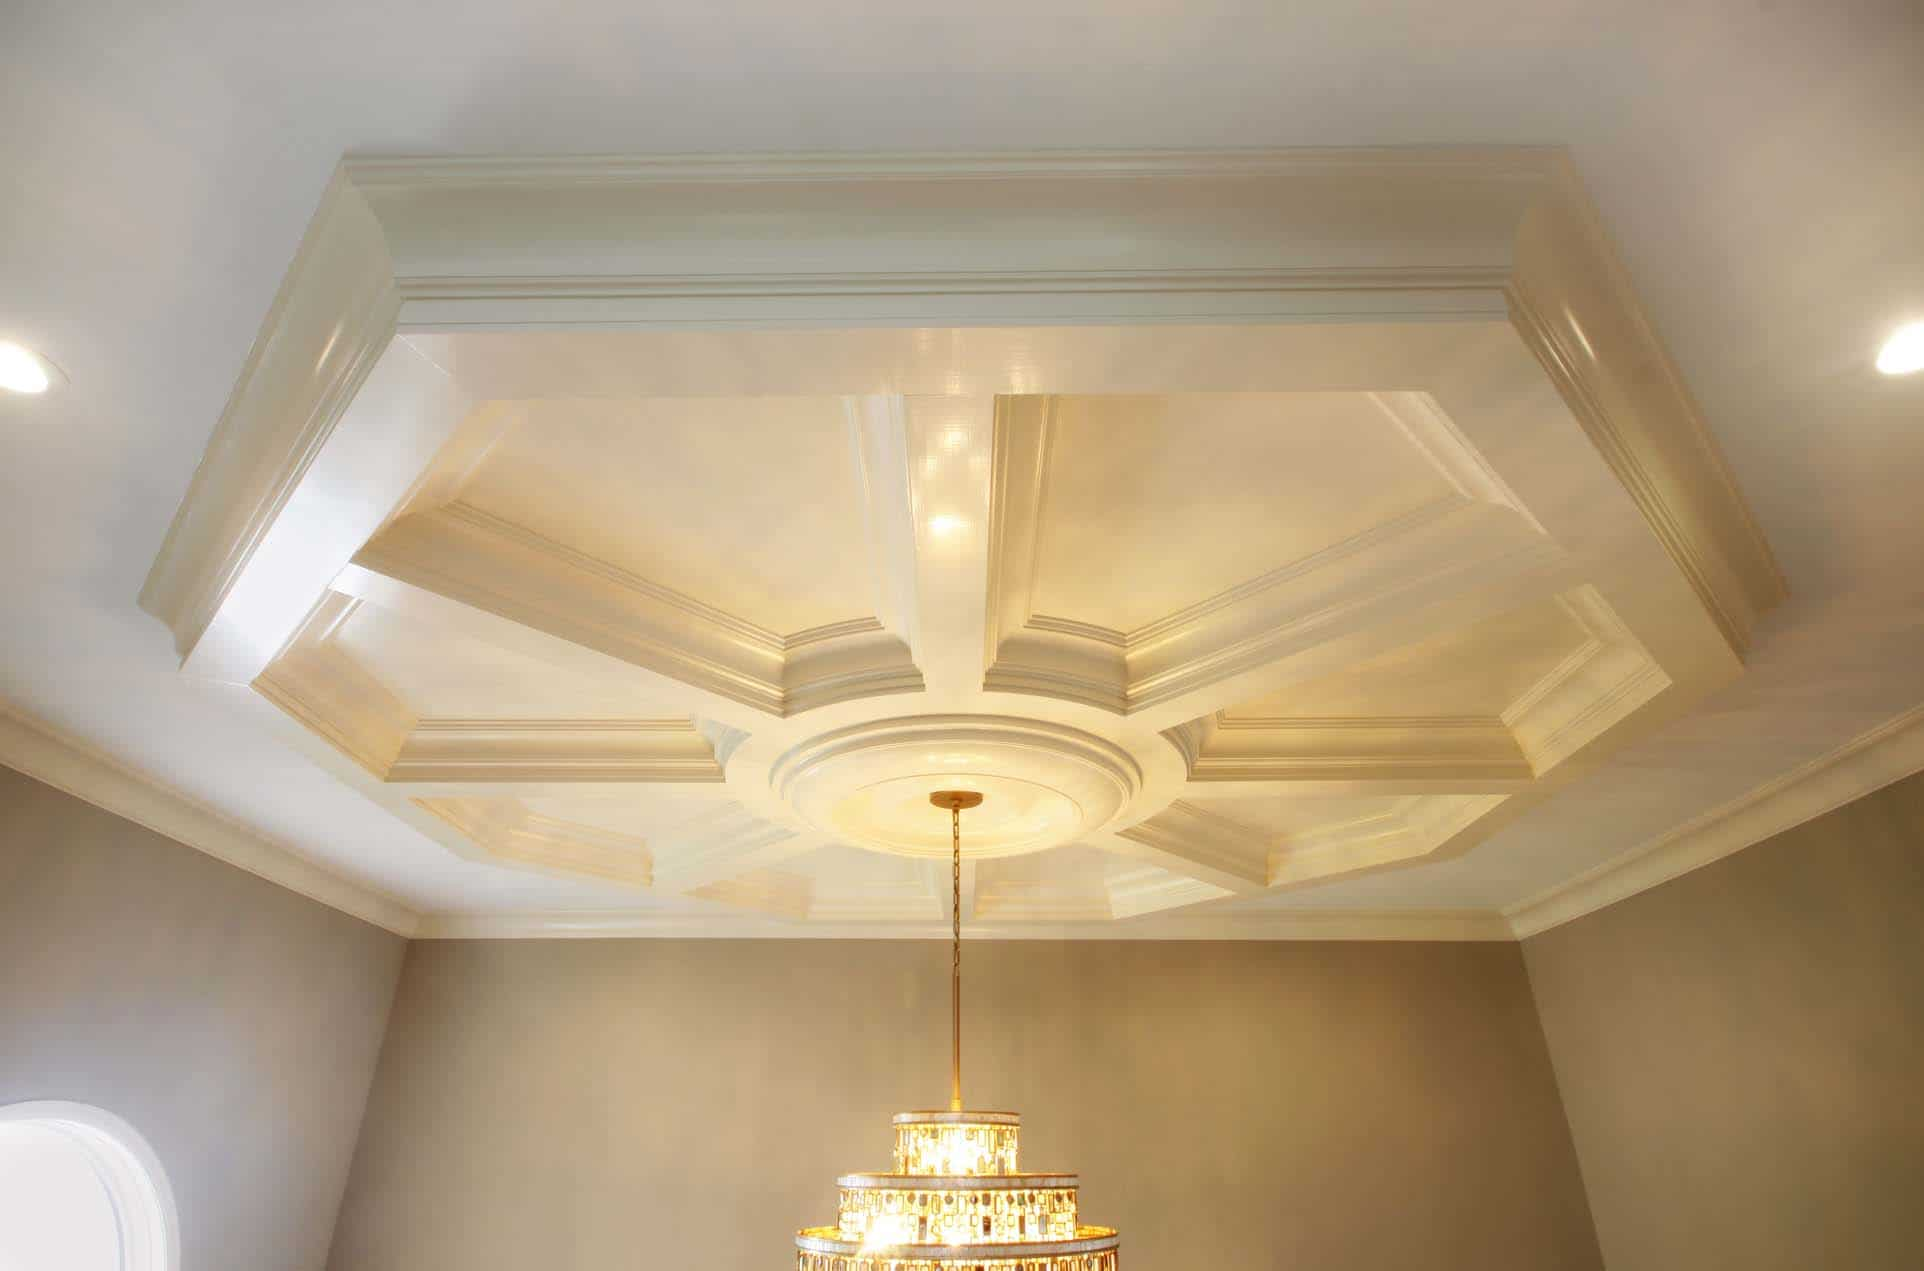 Pre-fabricated custom wood & MDF box beam coffered ceilings. Design options to fit any ceiling size, shape, type or style (flat, vaulted, cathedral, tray)